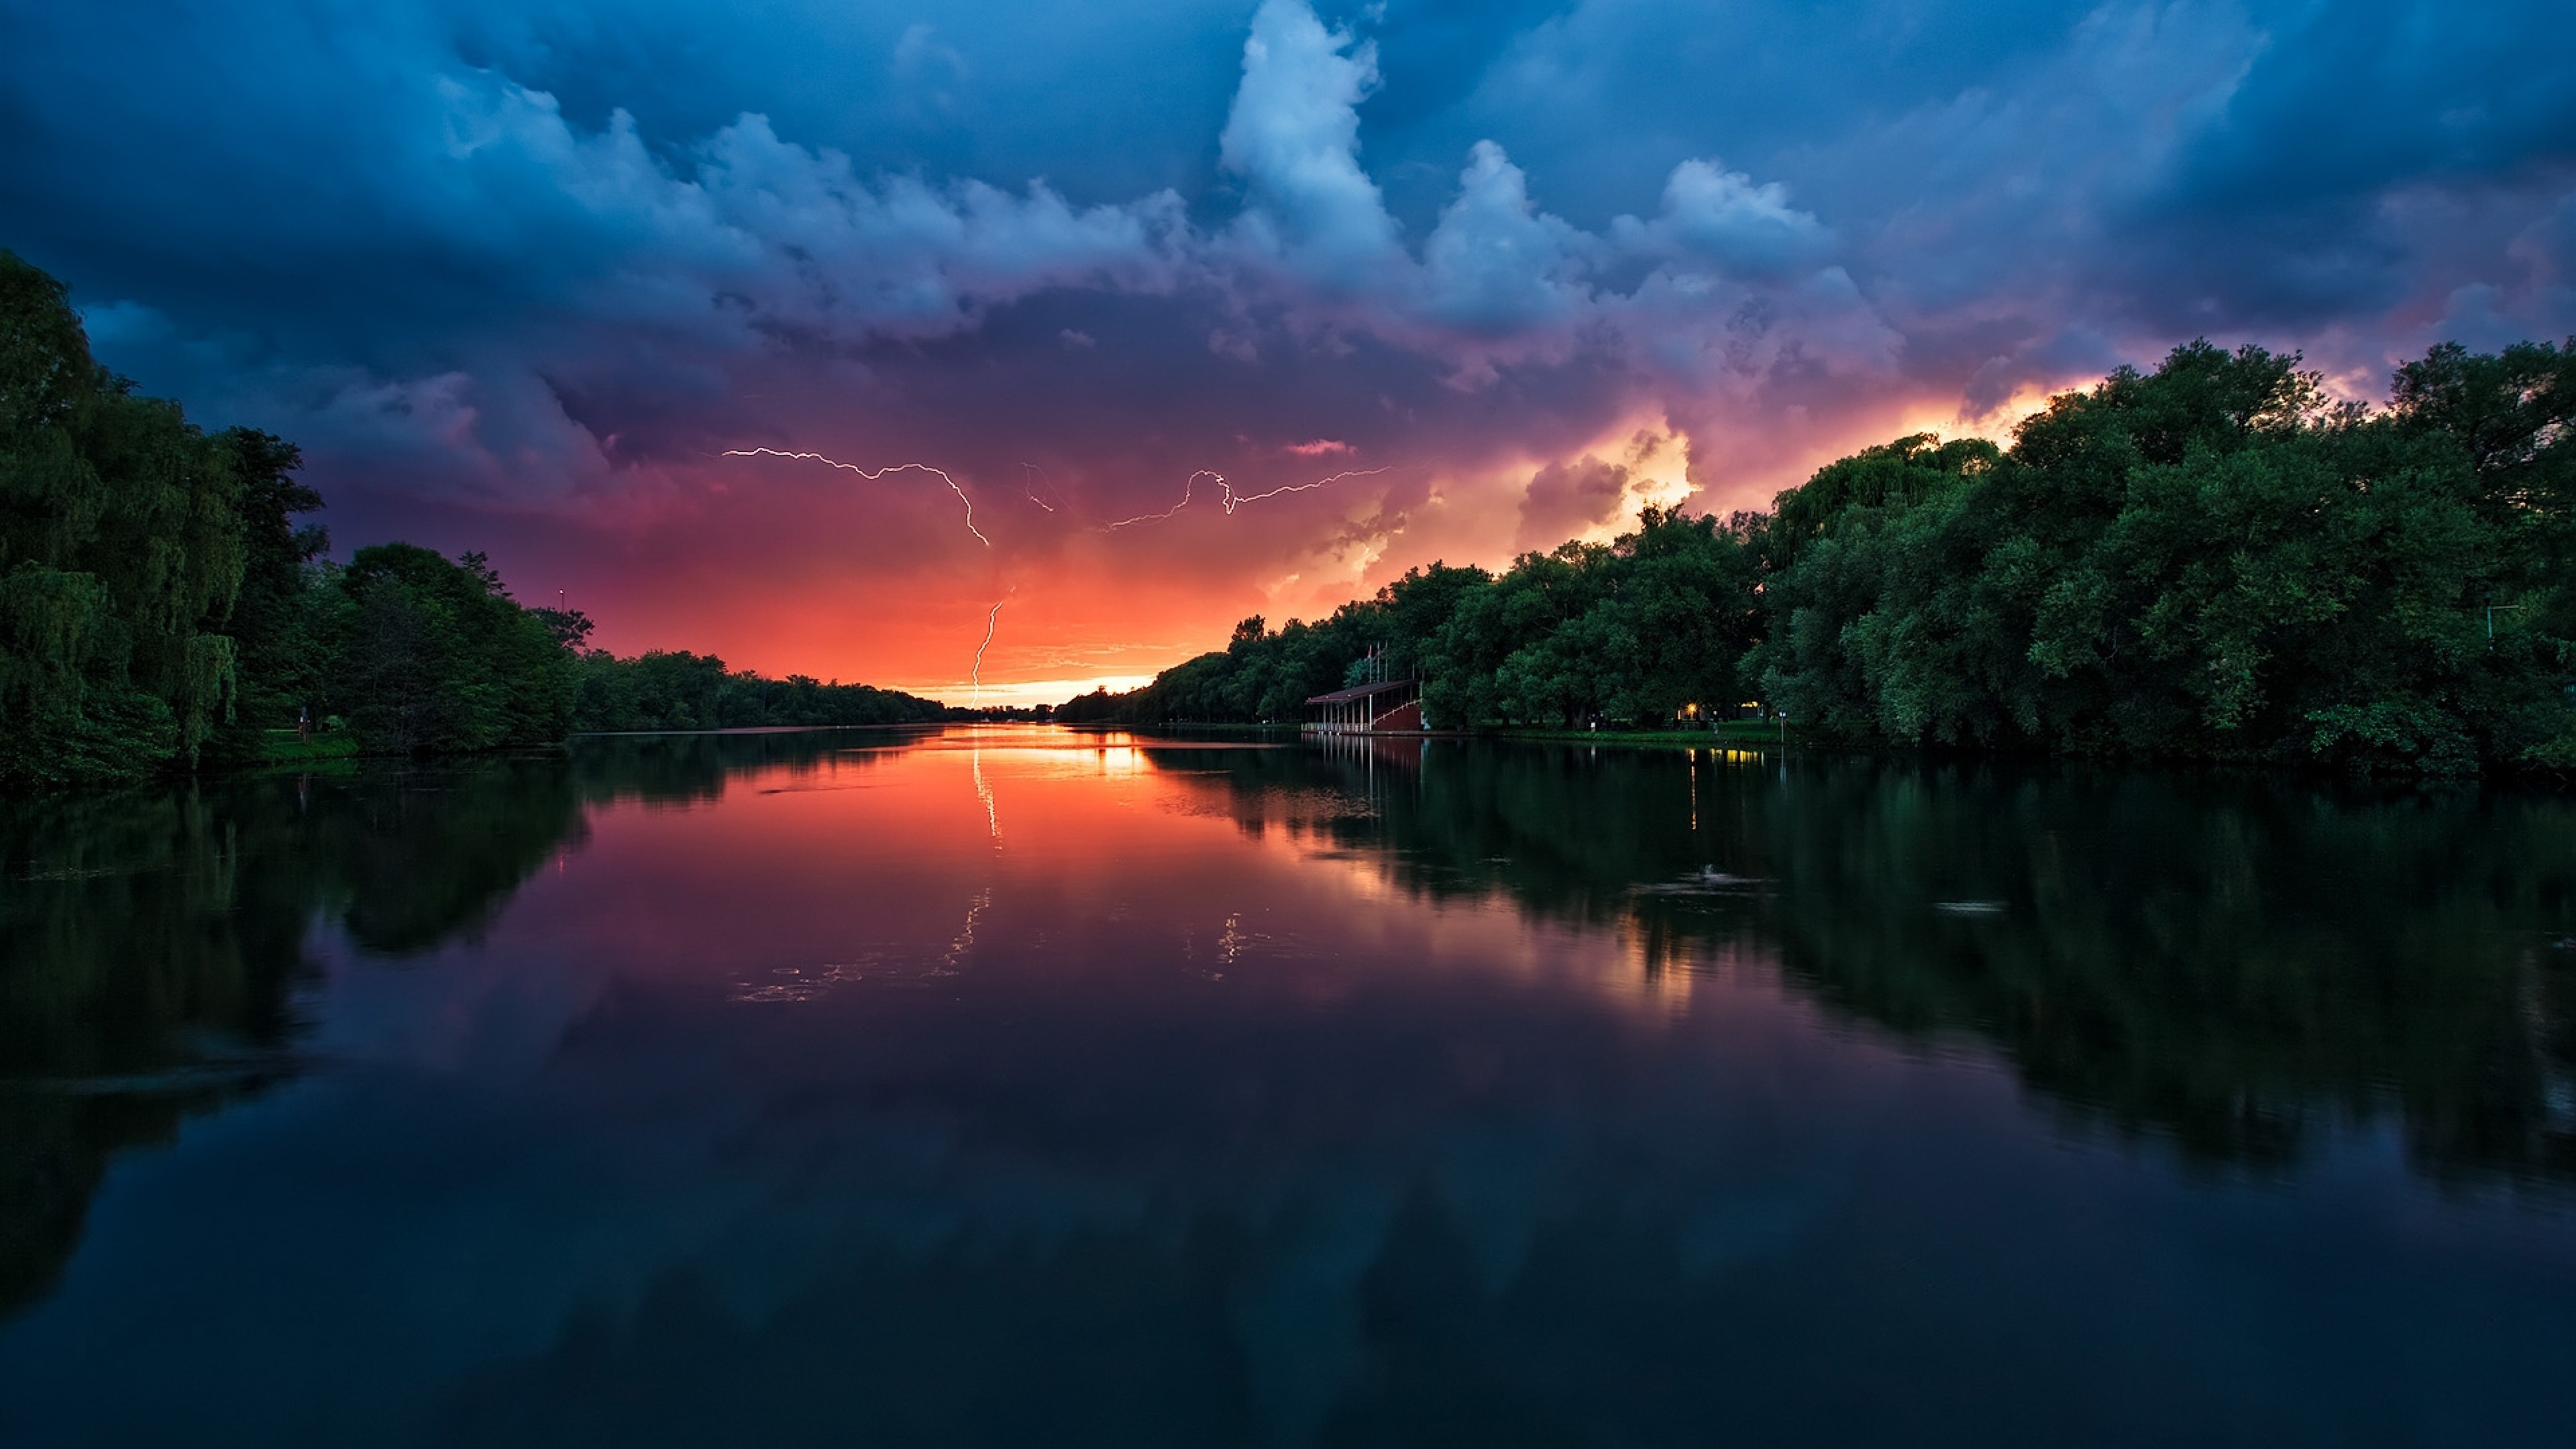 3840x2160 Preview wallpaper clouds, thunder-storm, river, reflection, lightning,  trees